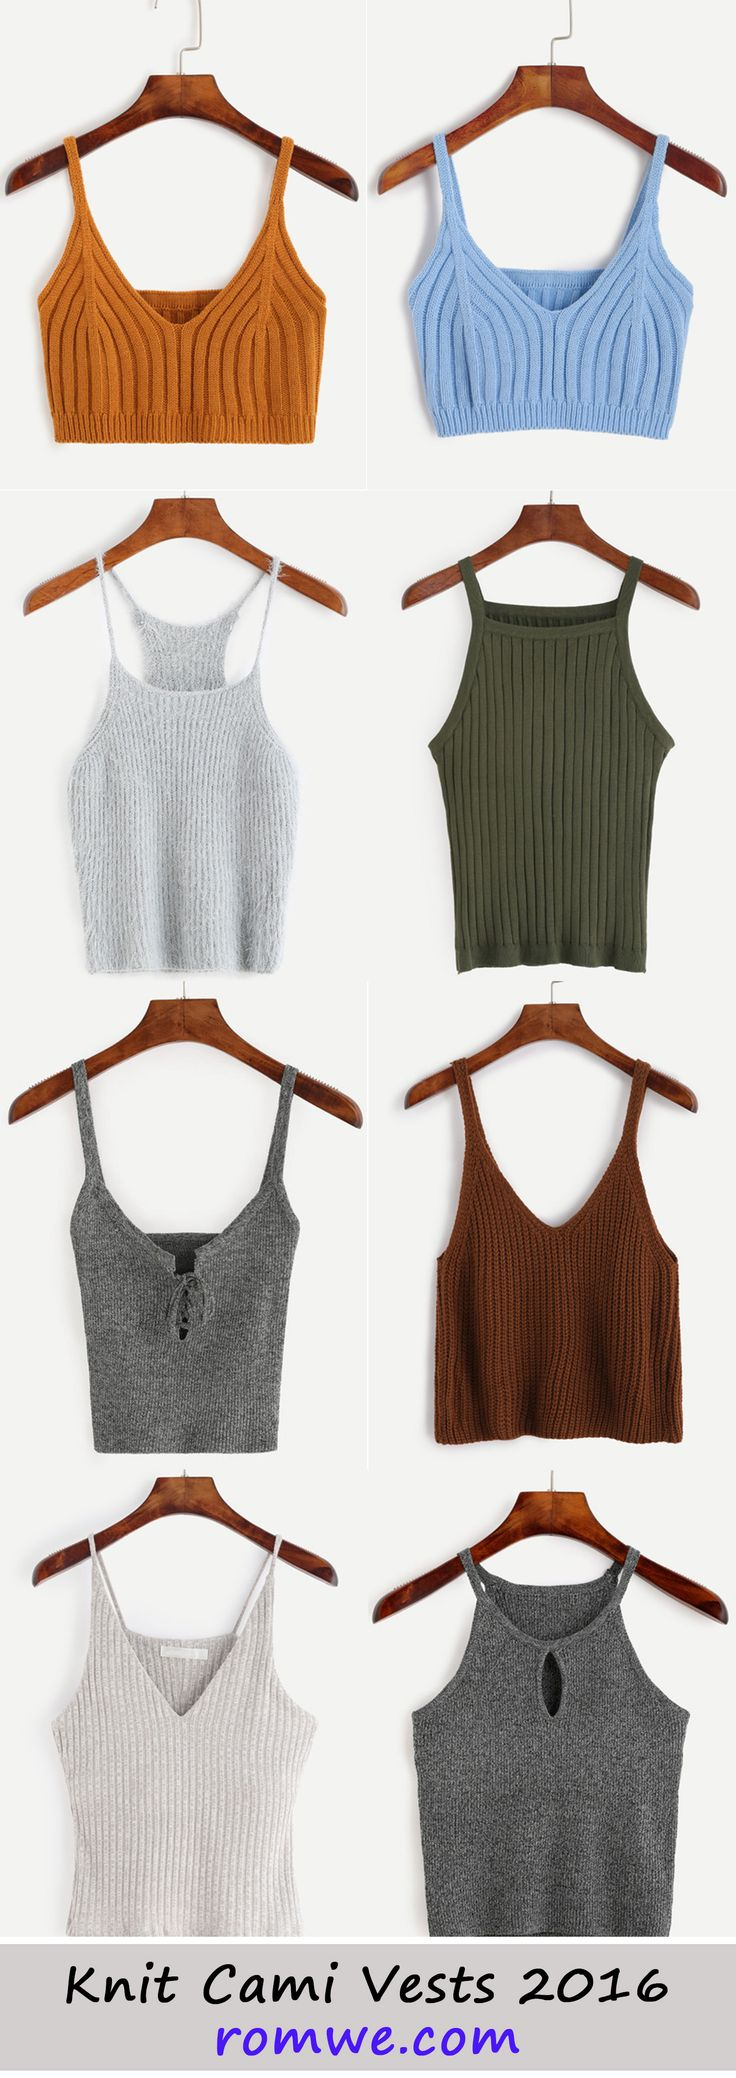 Knit Cami Vests from rowme.com - low price begins at US$3.99 !!!